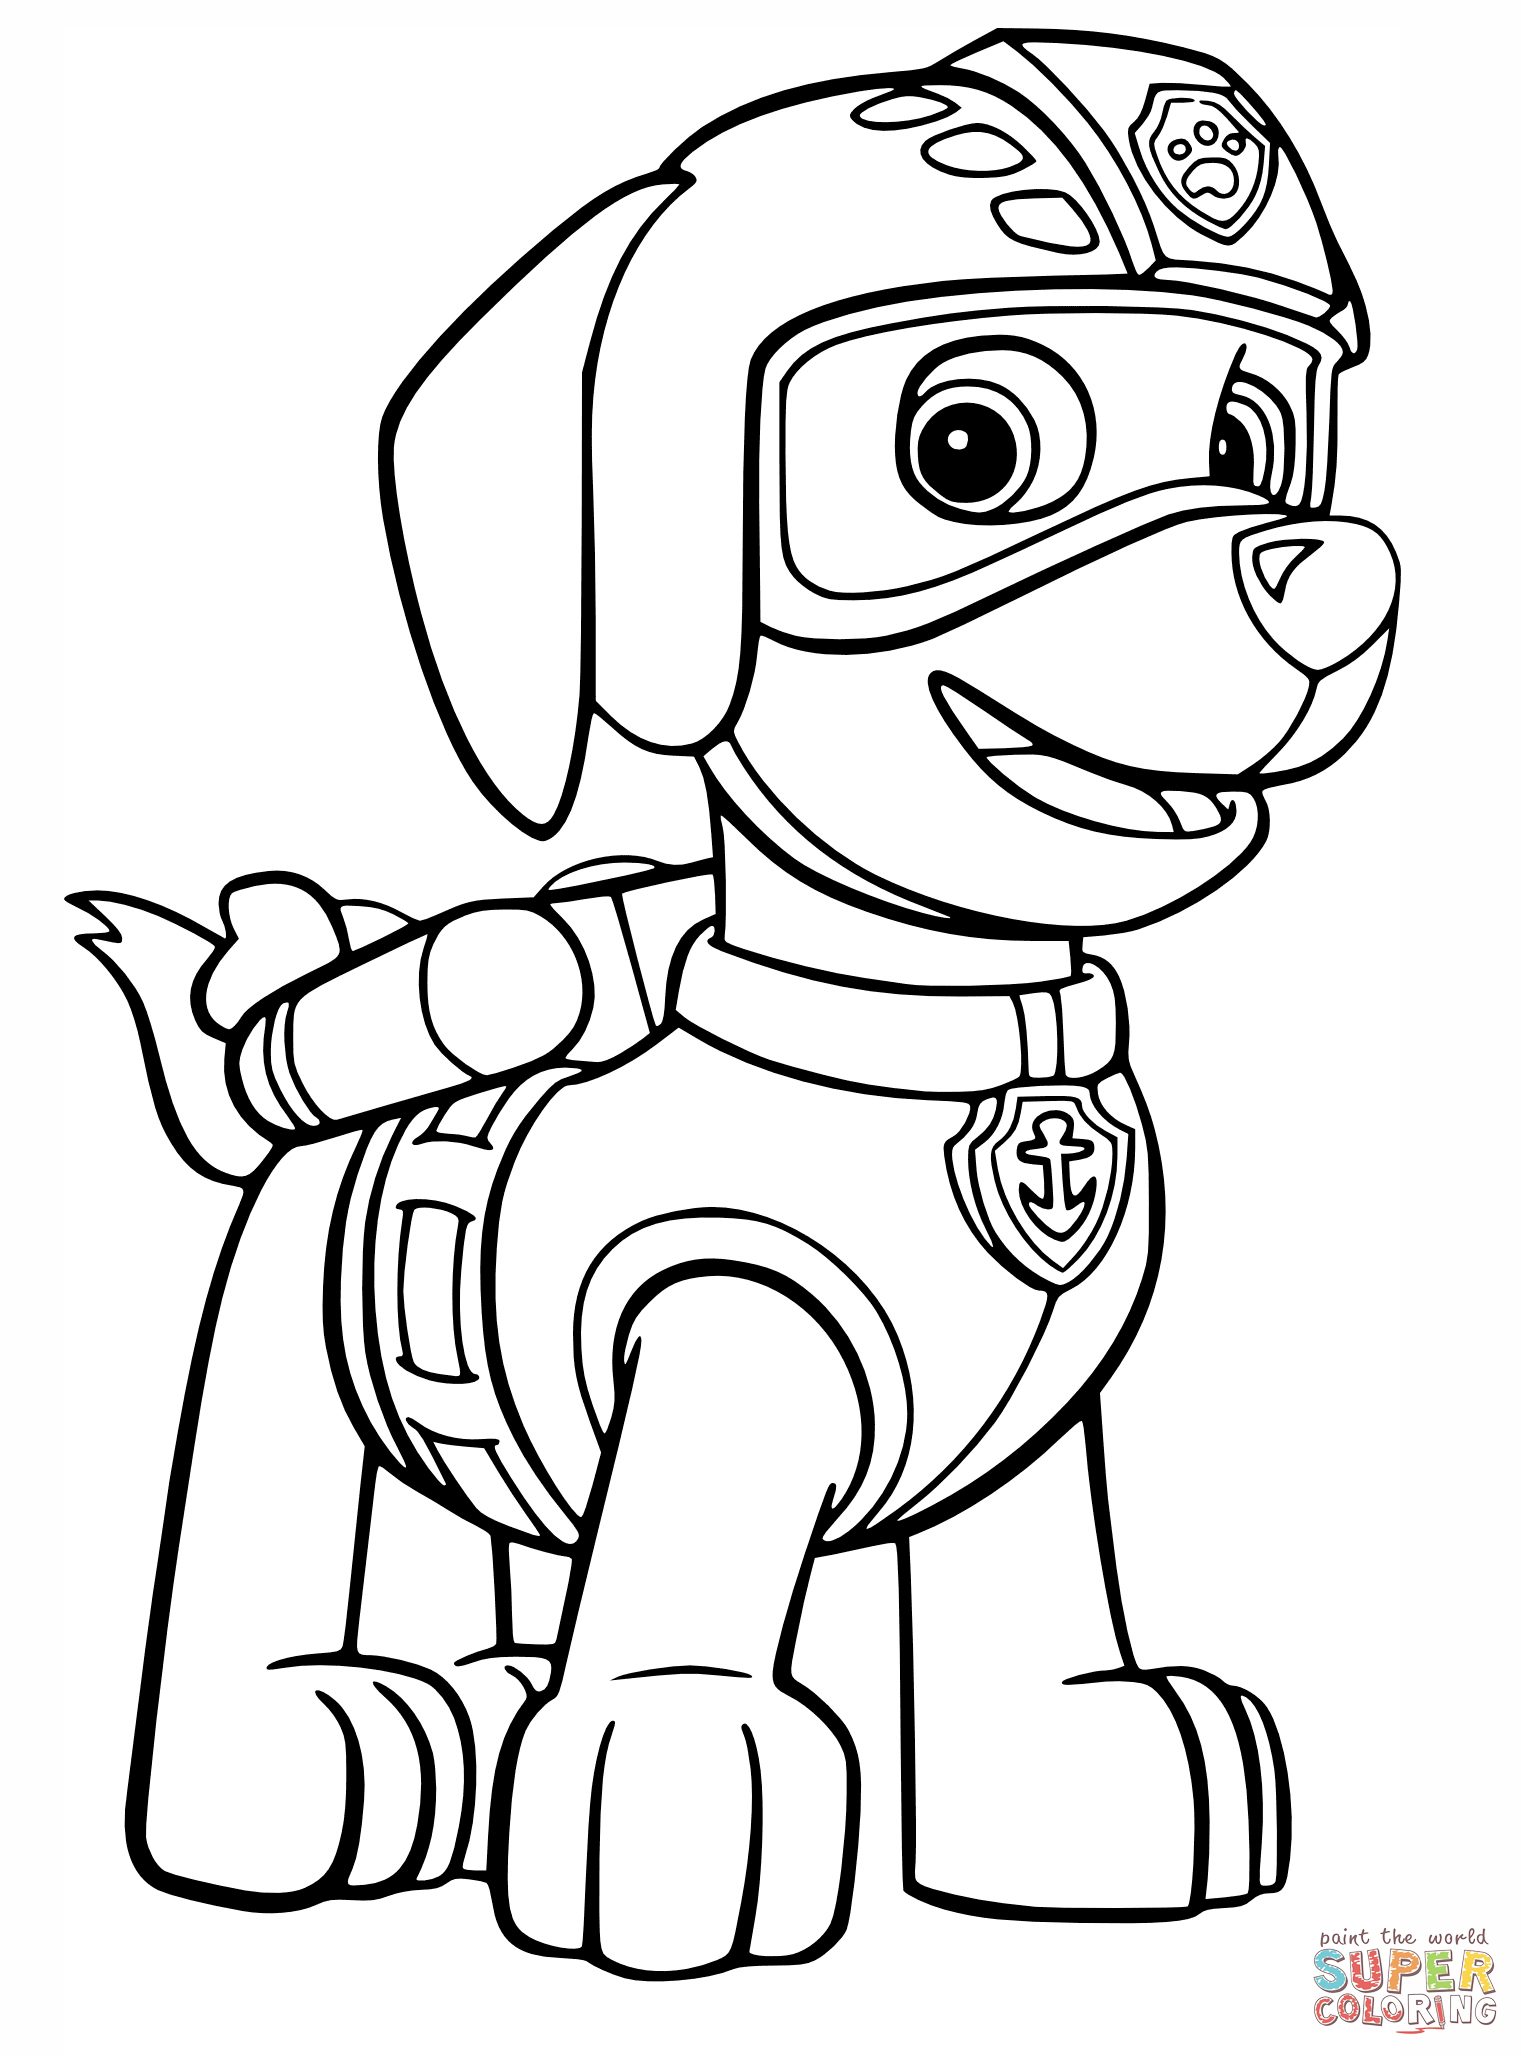 Paw Patrol Coloring Pages | Free Coloring Pages - Free Printable Paw Patrol Coloring Pages